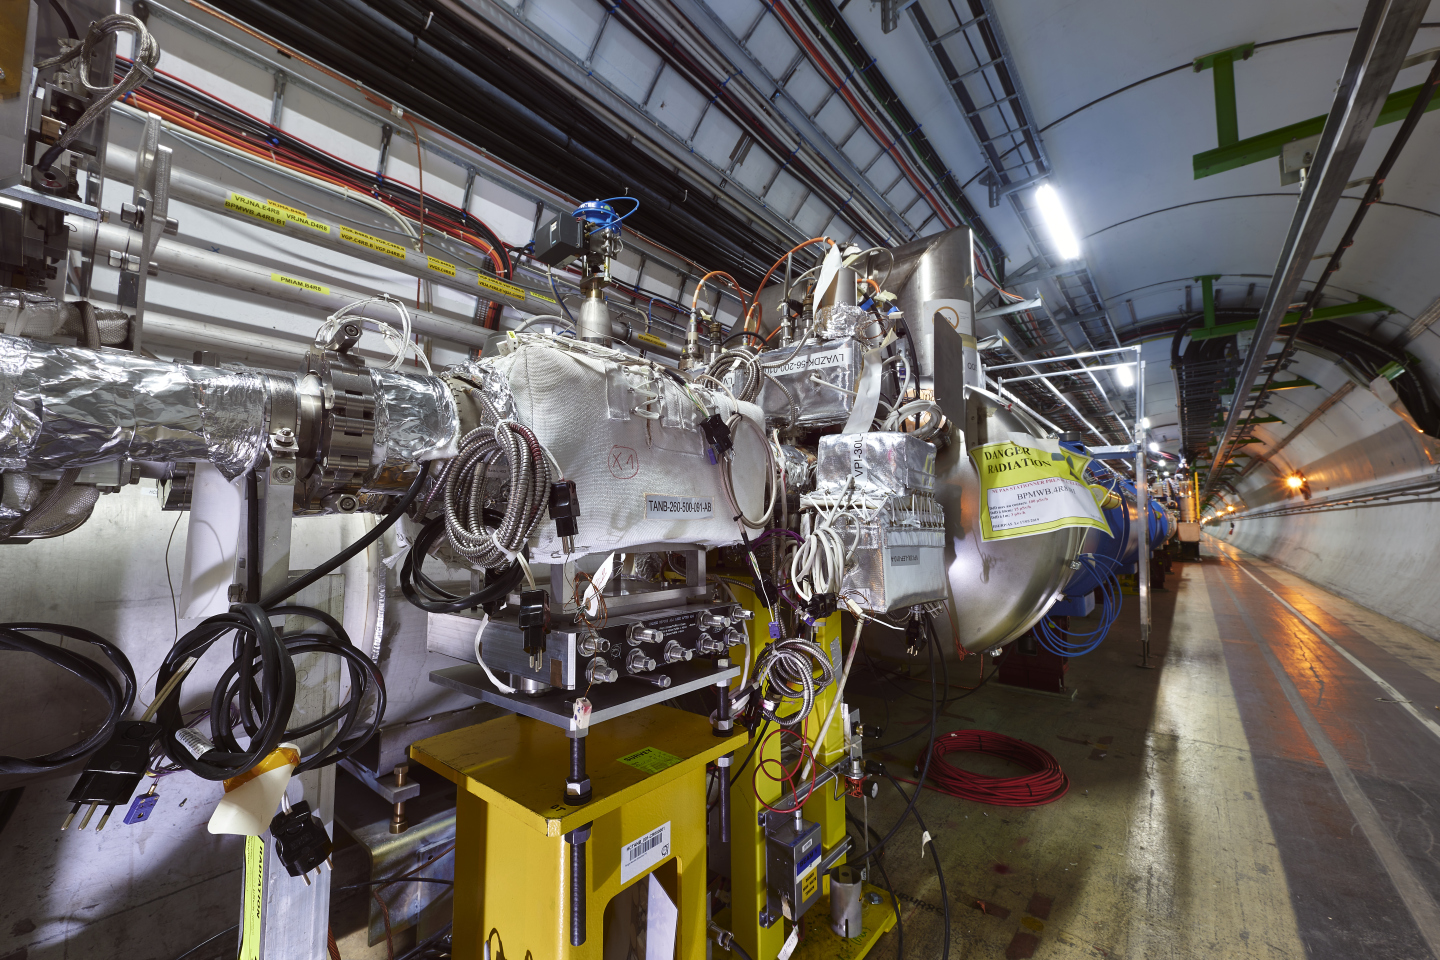 Markus Brugger and Francisco Sanchez Galan (EN-EA) will take Frederick Bordry, Lucio Rossi and Roberto Losito (among others) to Point 8 to see the first HL-LHC equipment installed at its final location in the LHC tunnel: the TANB absorber.